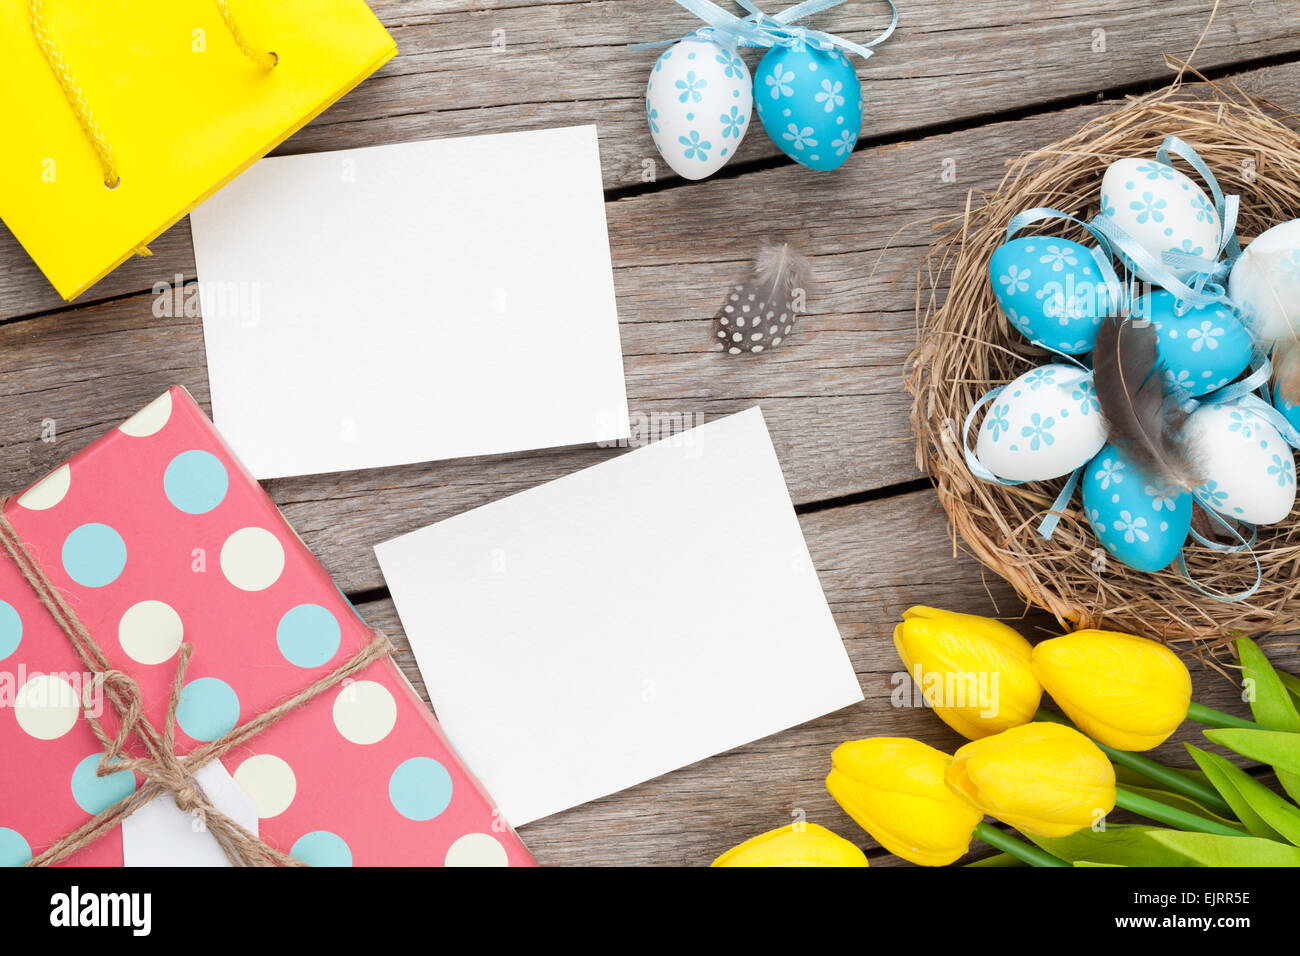 Easter Background With Blank Photo Frames Stock Photos & Easter ...